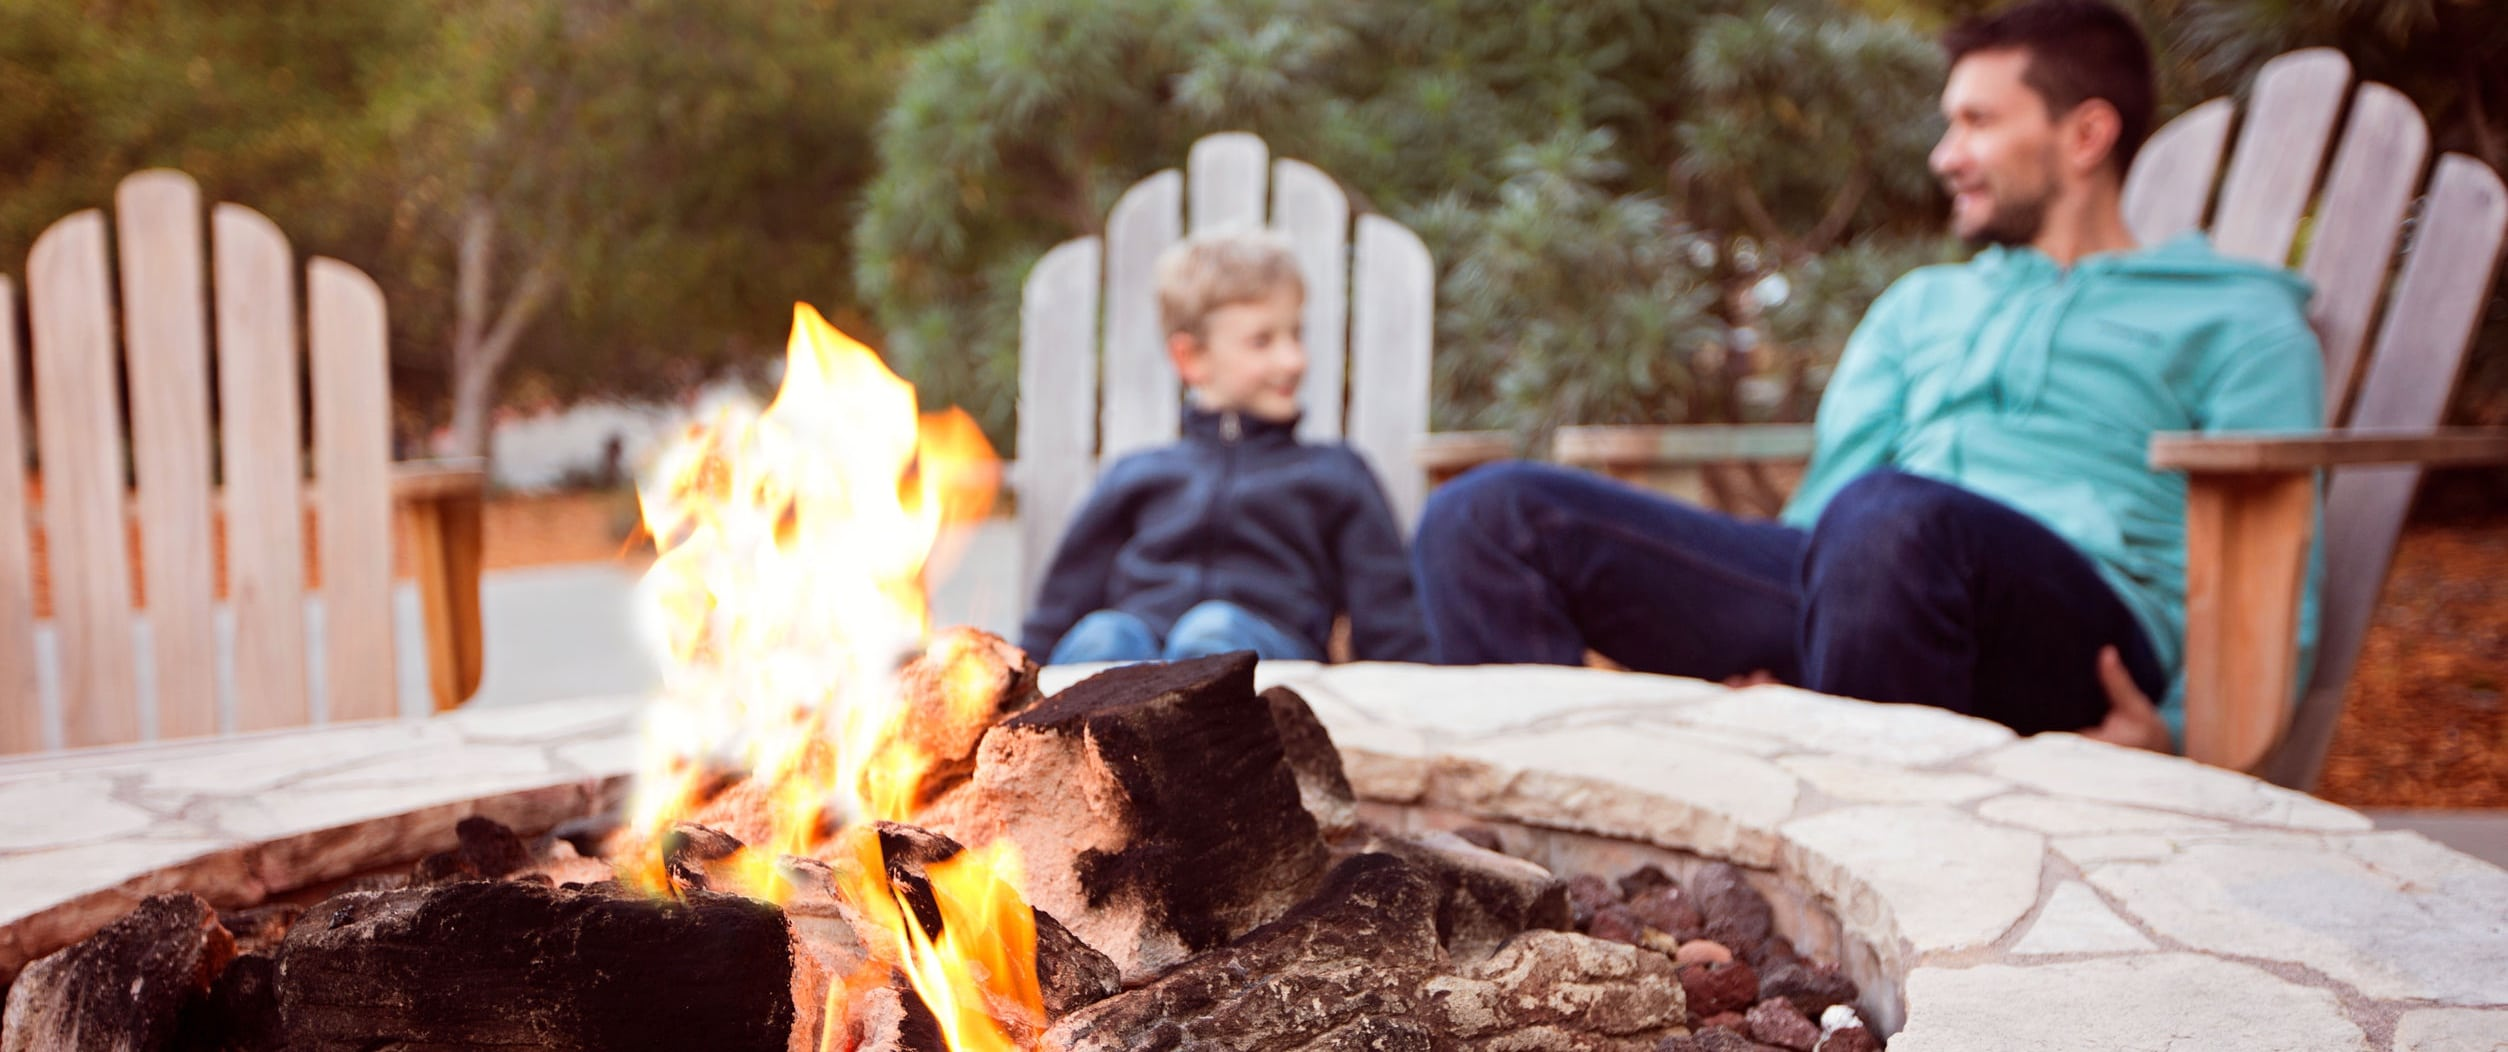 Man and son sitting by outdoor firepit